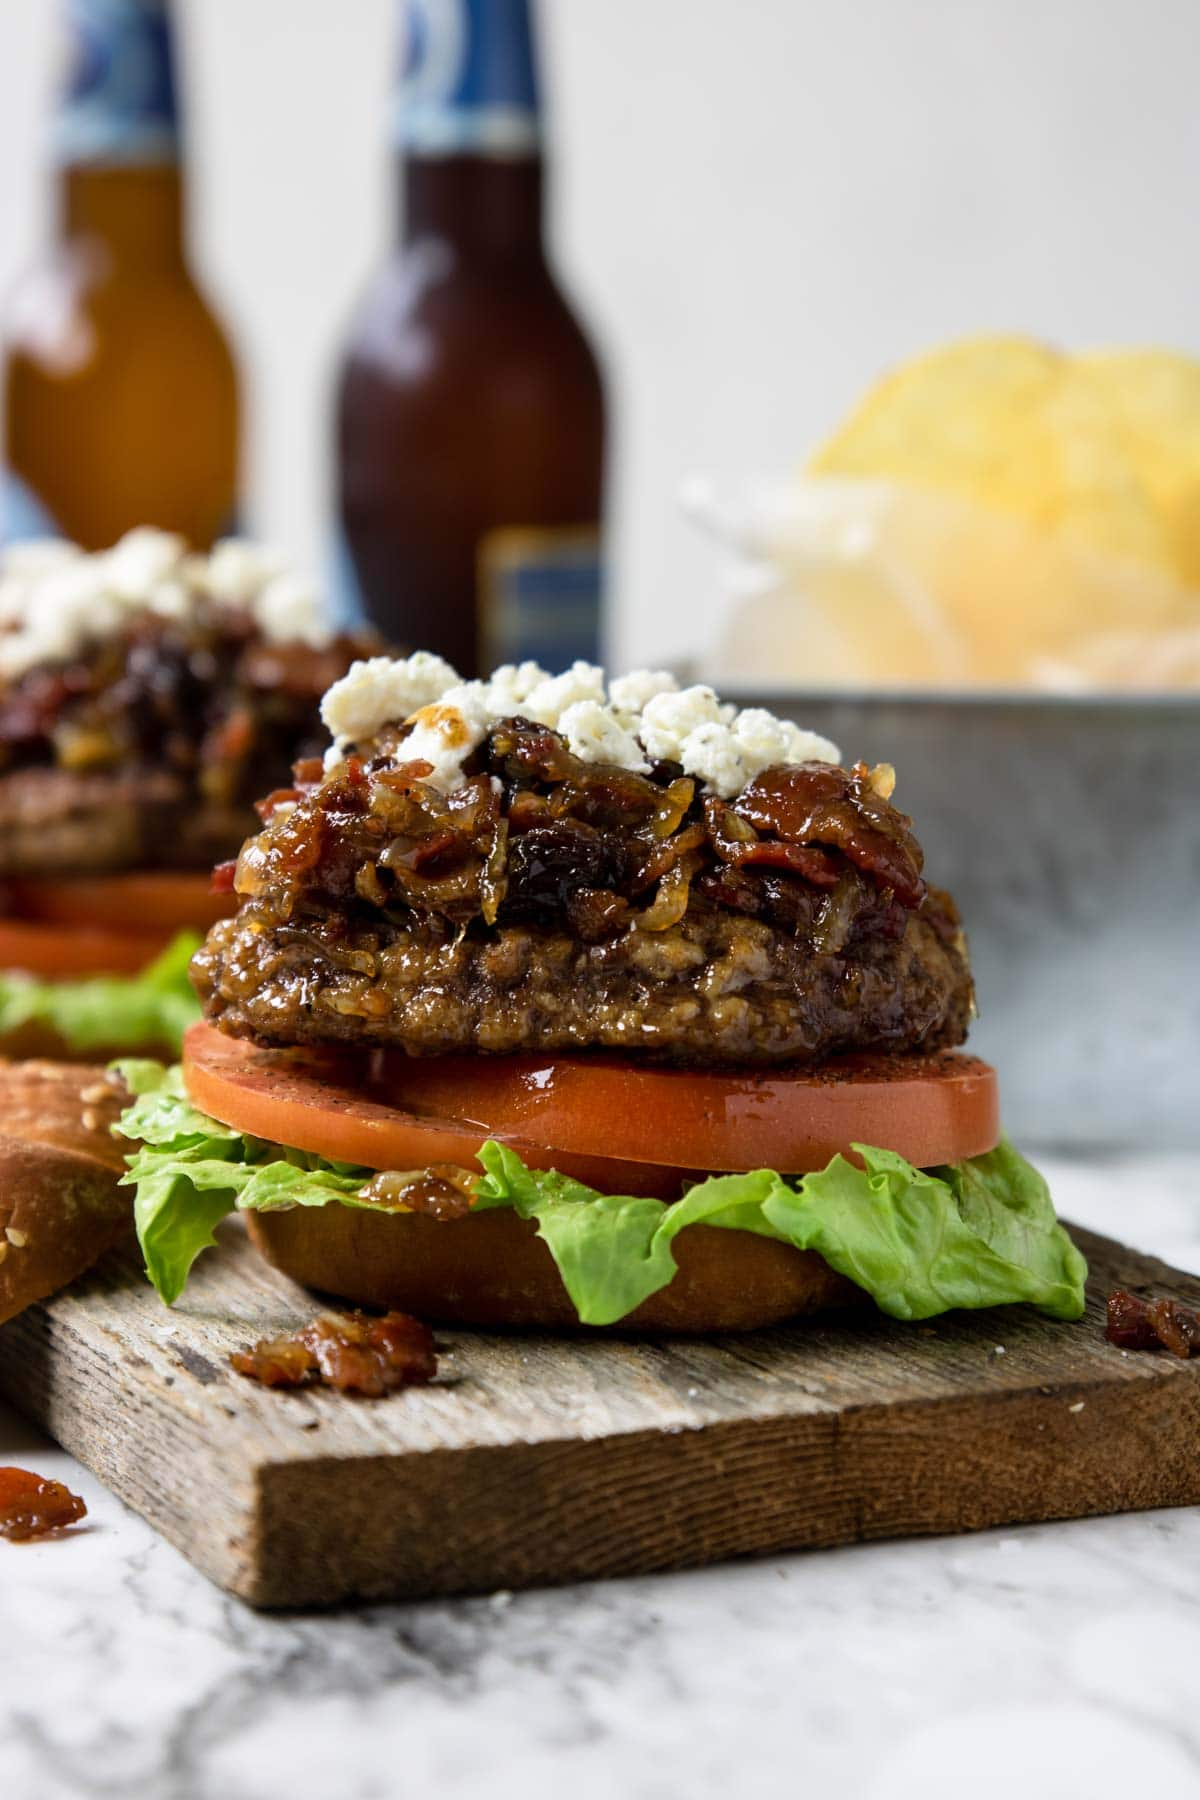 two burgers topped with bacon jam and boursin cheese and two bottles of beer in the background